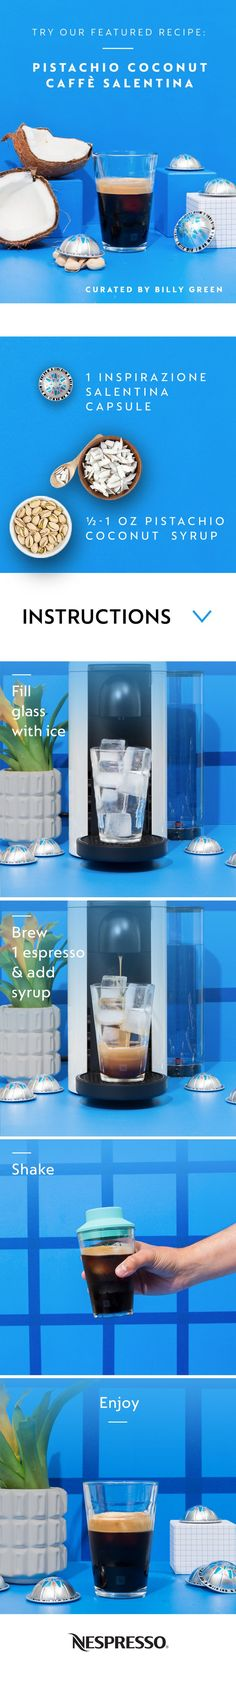 Shake up your summer with the cool taste of Try Billy Green's Pistachio Coconut Caffè Salentina and experience the premium taste of our iced Nespresso espresso. Espresso Coffee Table, Cappuccino Coffee, Coffee Type, Coffee Is Life, Coffee Coffee, Coffee Lovers, Thai Coffee, Spiced Coffee, Coffee Drinks